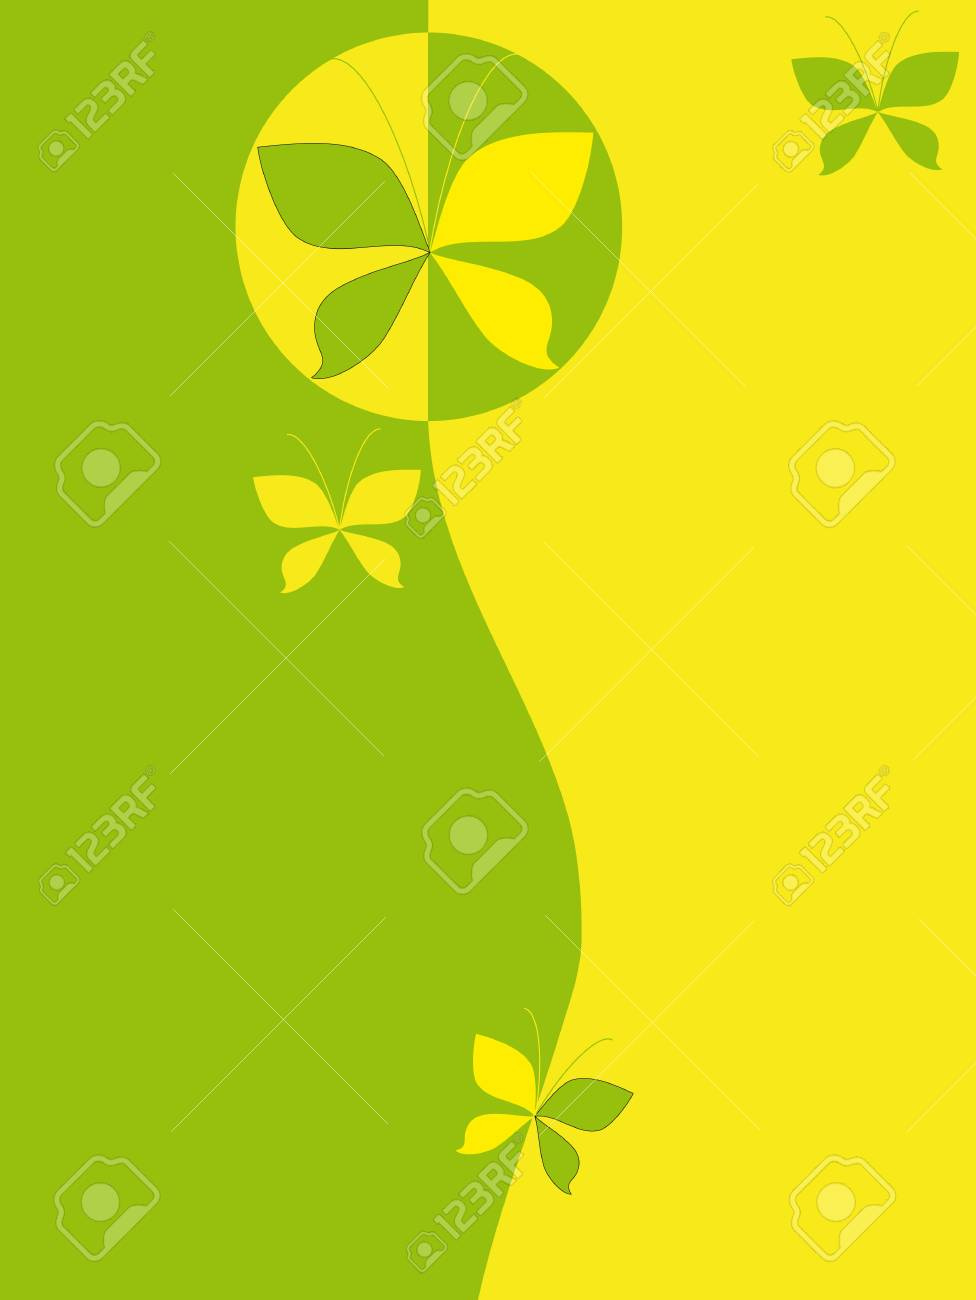 Abstract background with butterflies Stock Vector - 16664550